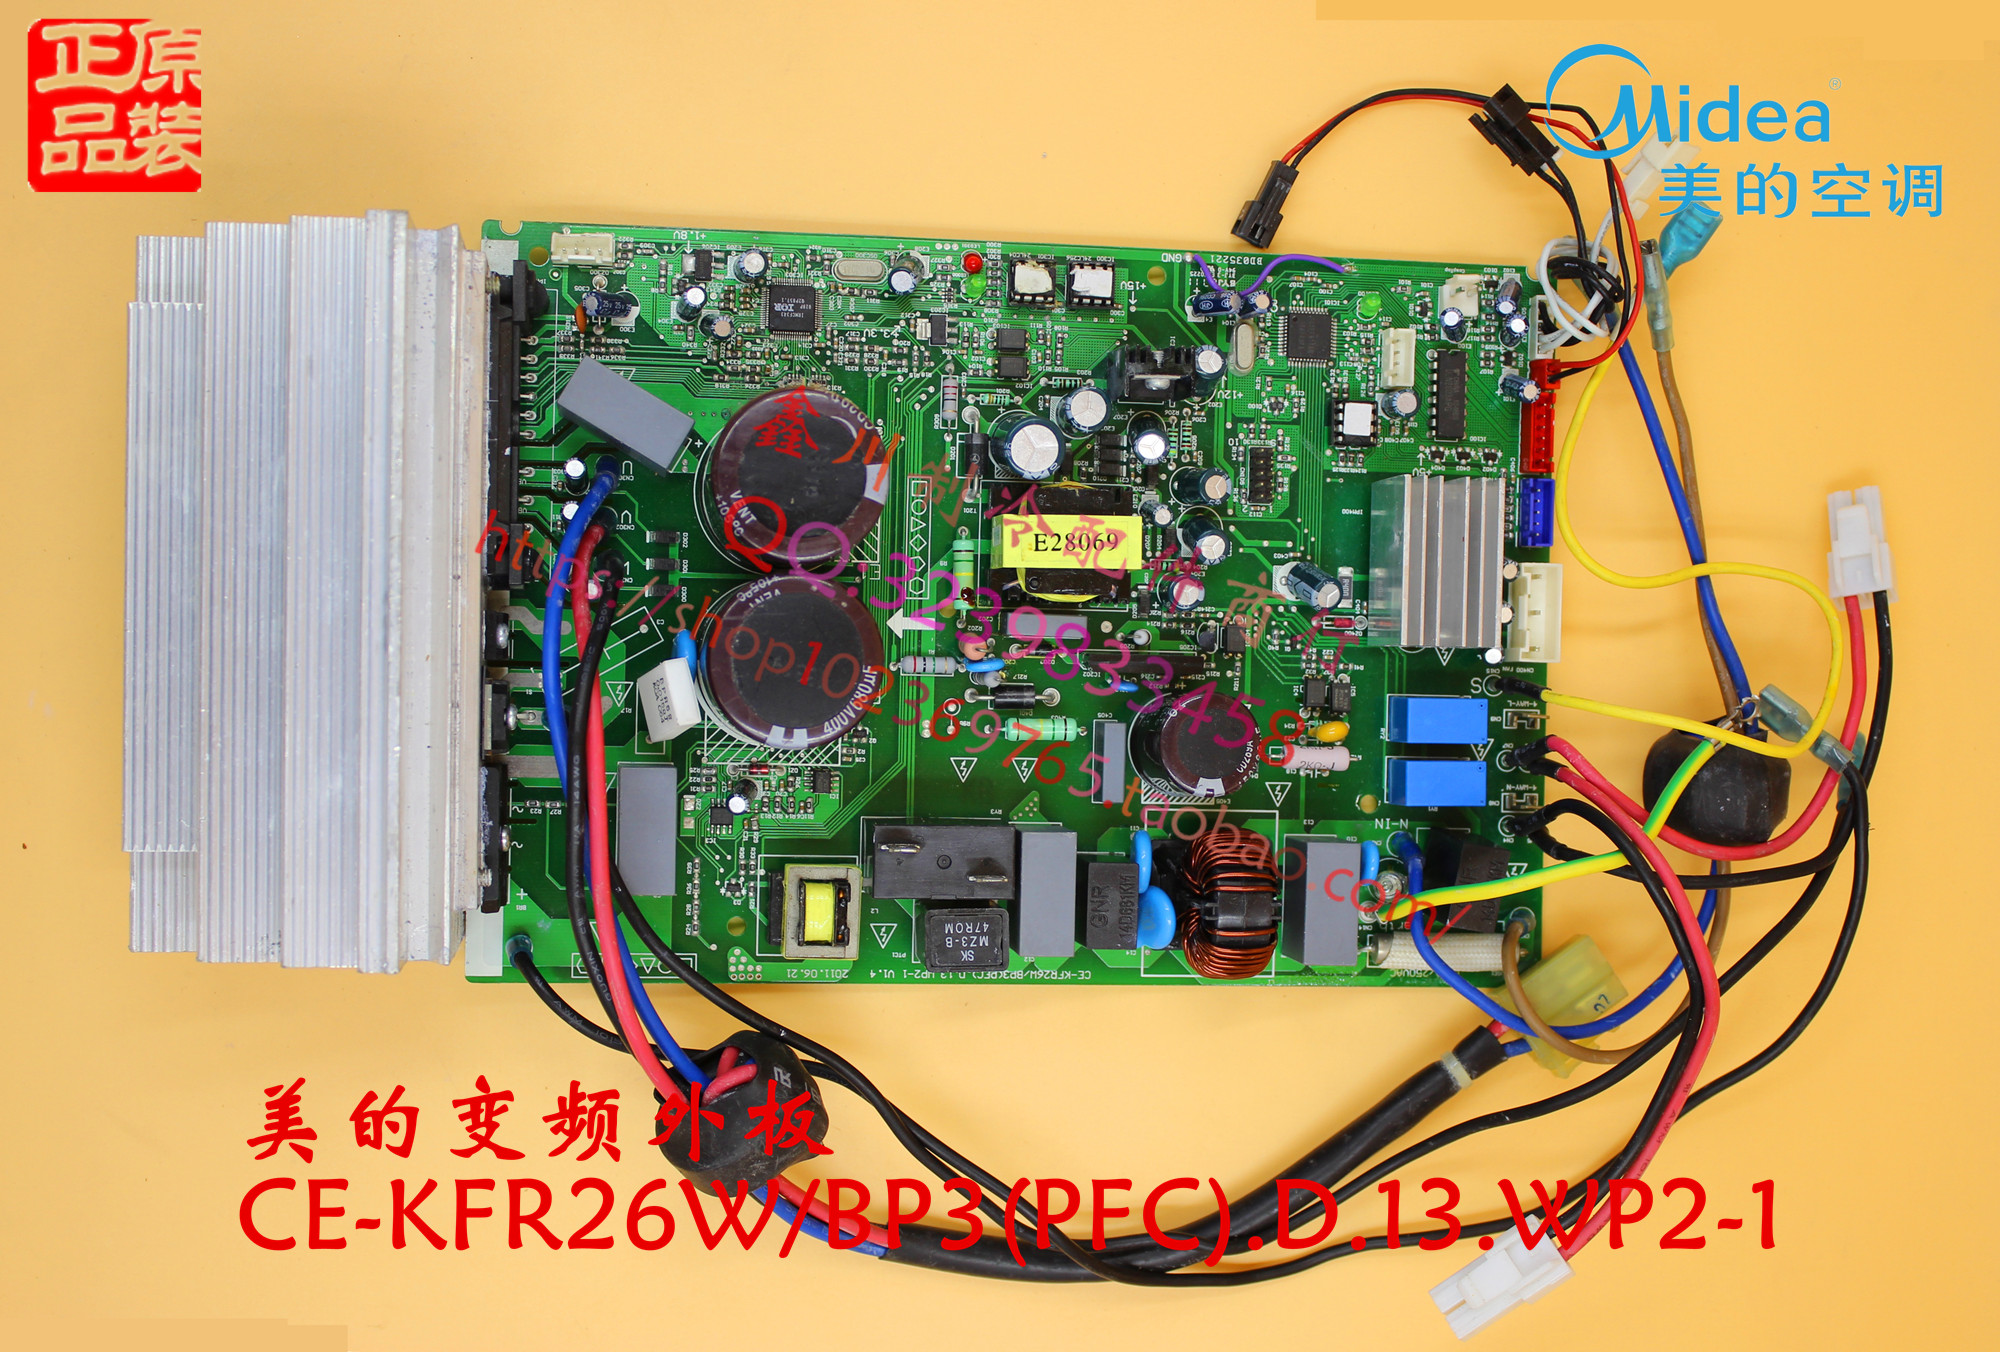 Original air conditioner frequency conversion board CE-KFR26W\/BP3 (PFC).D.13.WP2-1